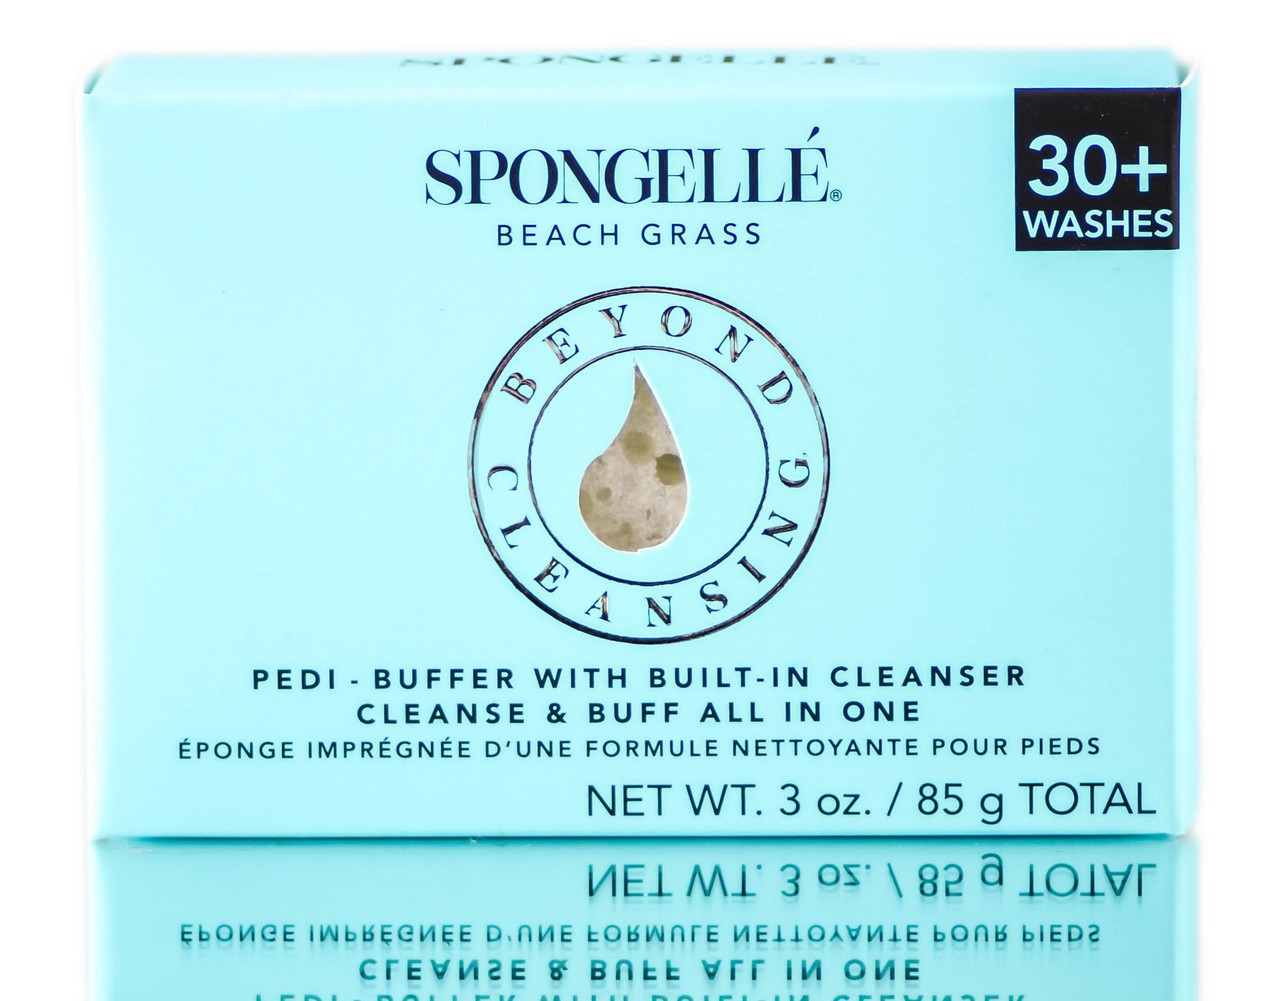 Spongelle Pedi-Buffer with Built-In Cleanser Main St. Apothecary VITAMIN C FACE FIRMING SERUM with Hyaluronic & Natural Argan Oil for all Skin Types 1oz / 30ml